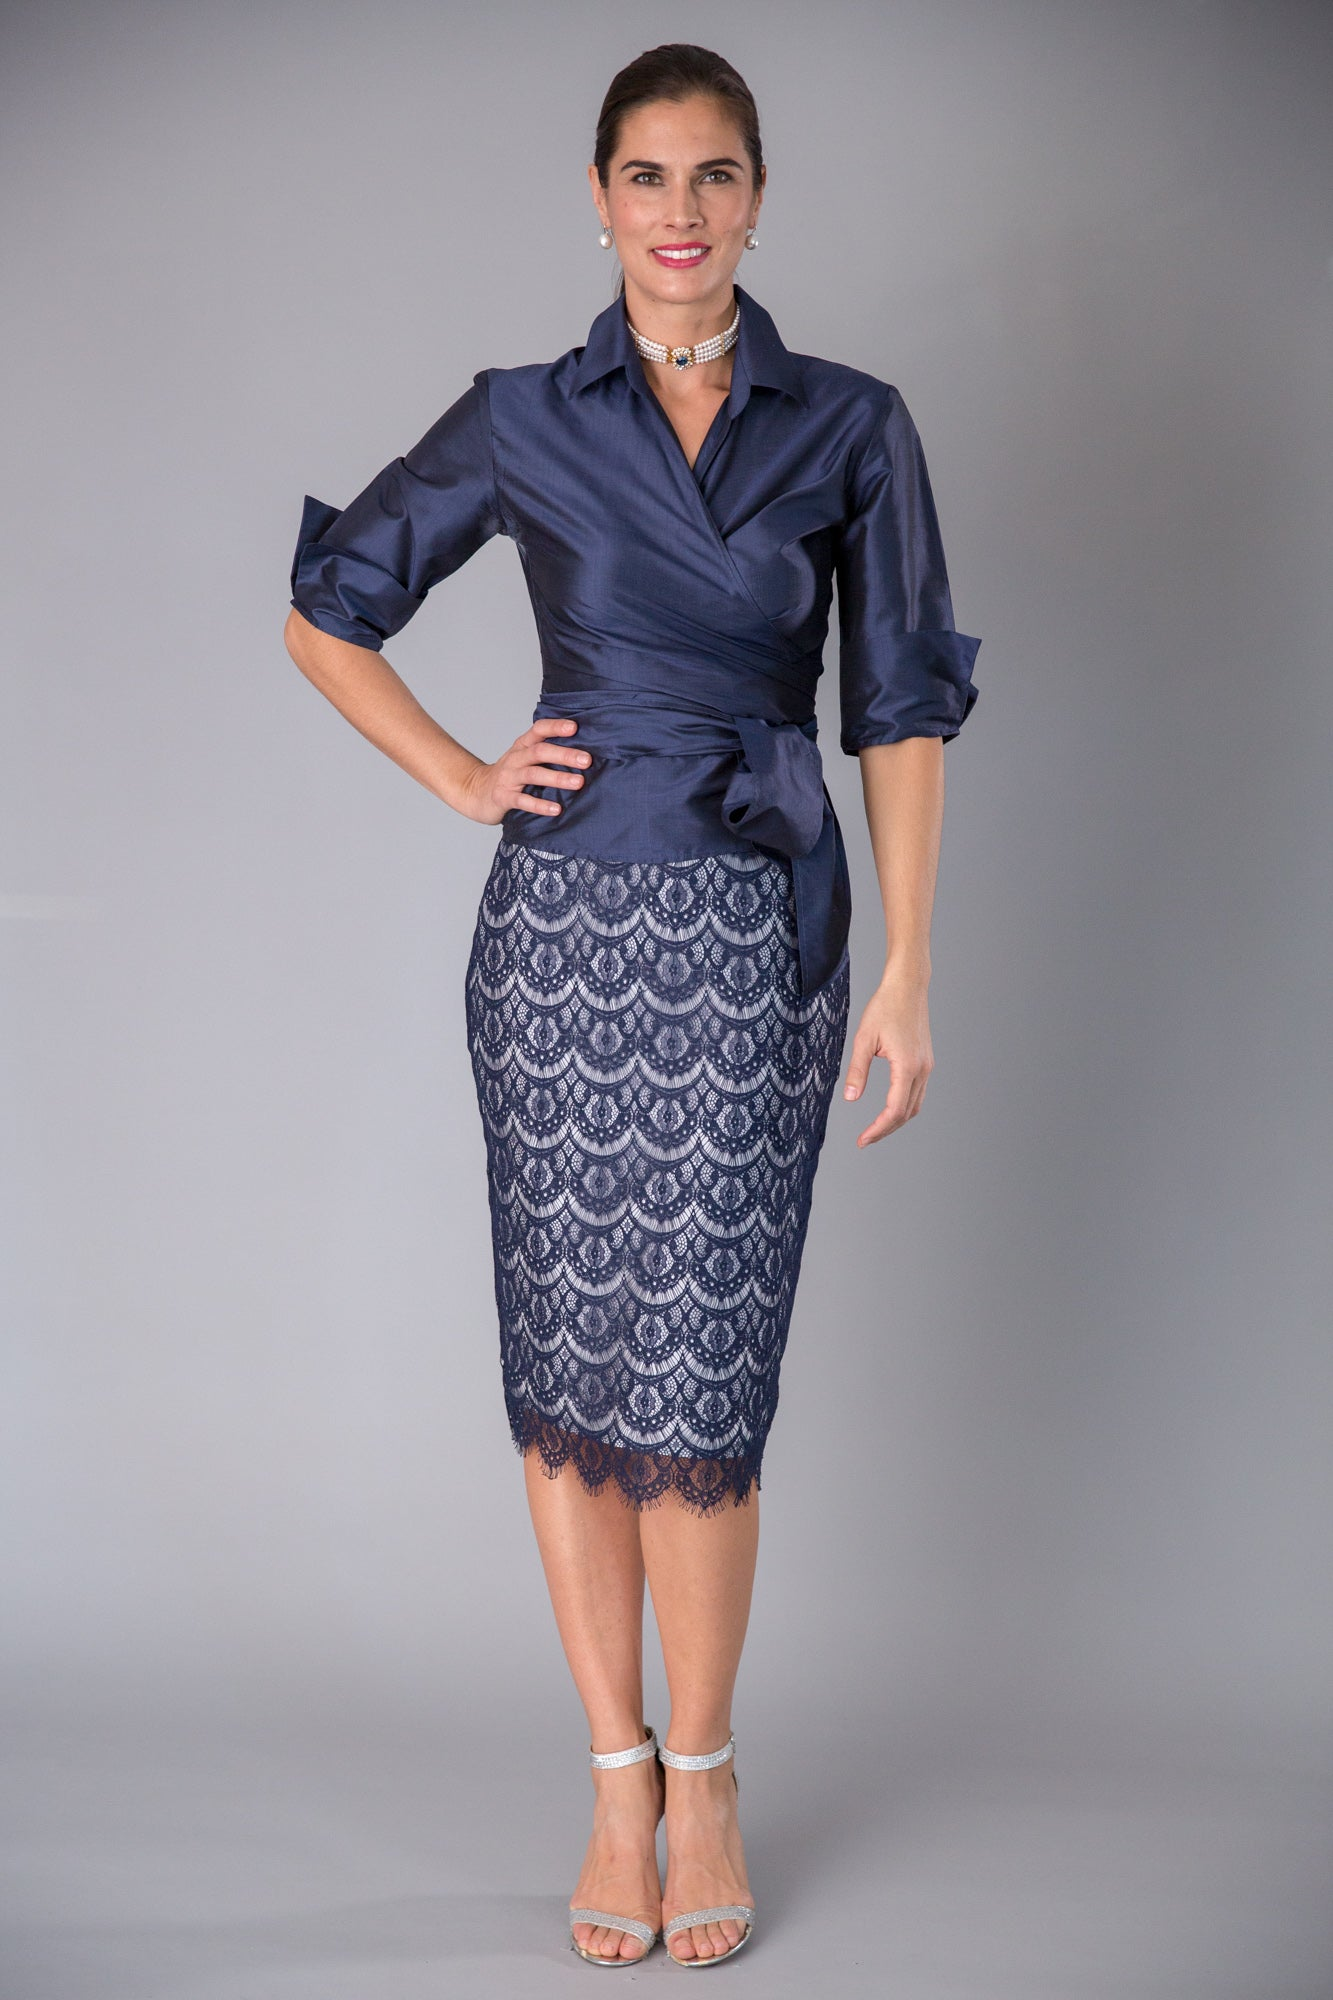 Lace Pencil Skirt - Navy + Silver for the Mother of the Bride / Groom